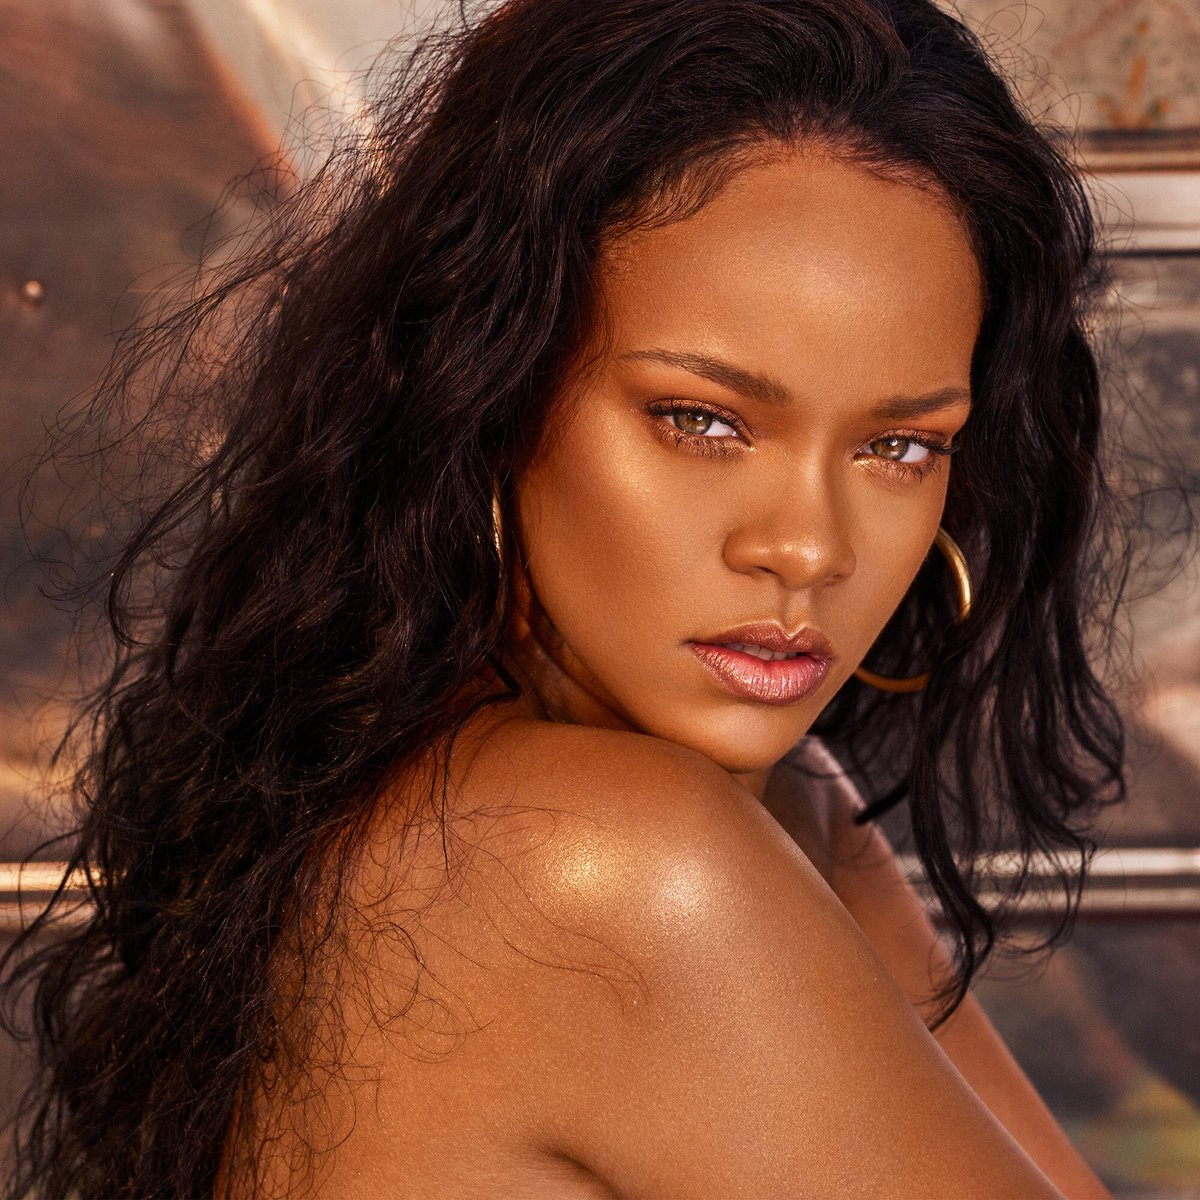 Rihanna News And Photos: Rihanna (@rihanna)